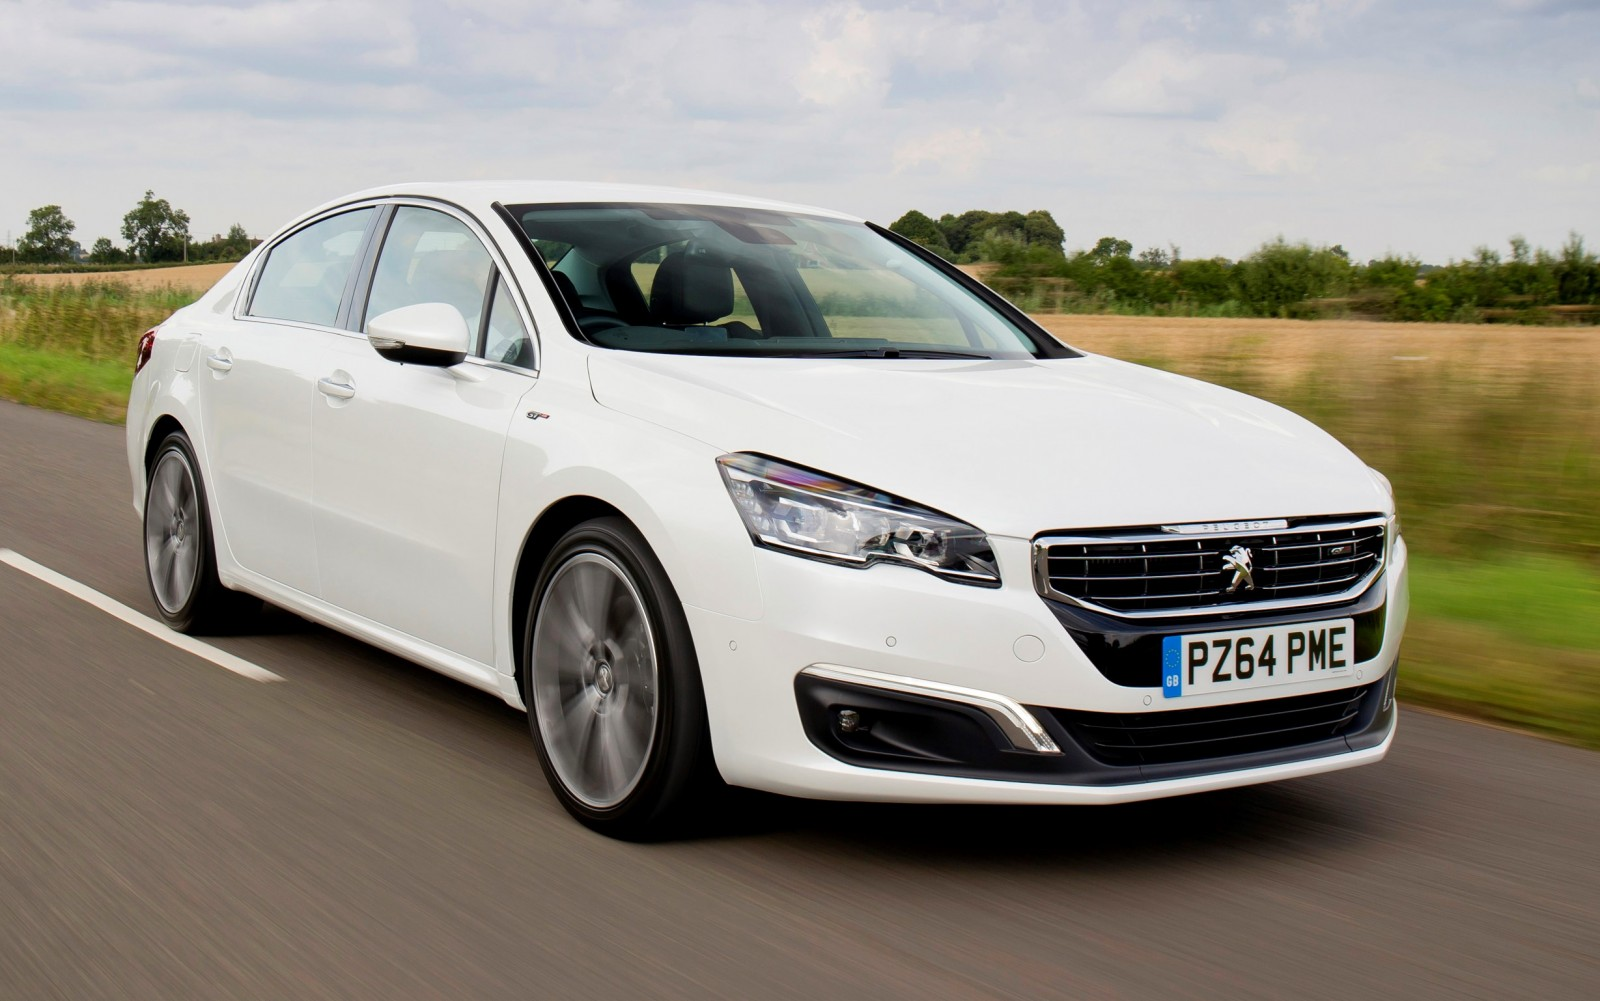 Update2 New Photos - 2015 Peugeot 508 Facelifted With New LED DRLs, Box-Design Beams and Tweaked Cabin Tech 6